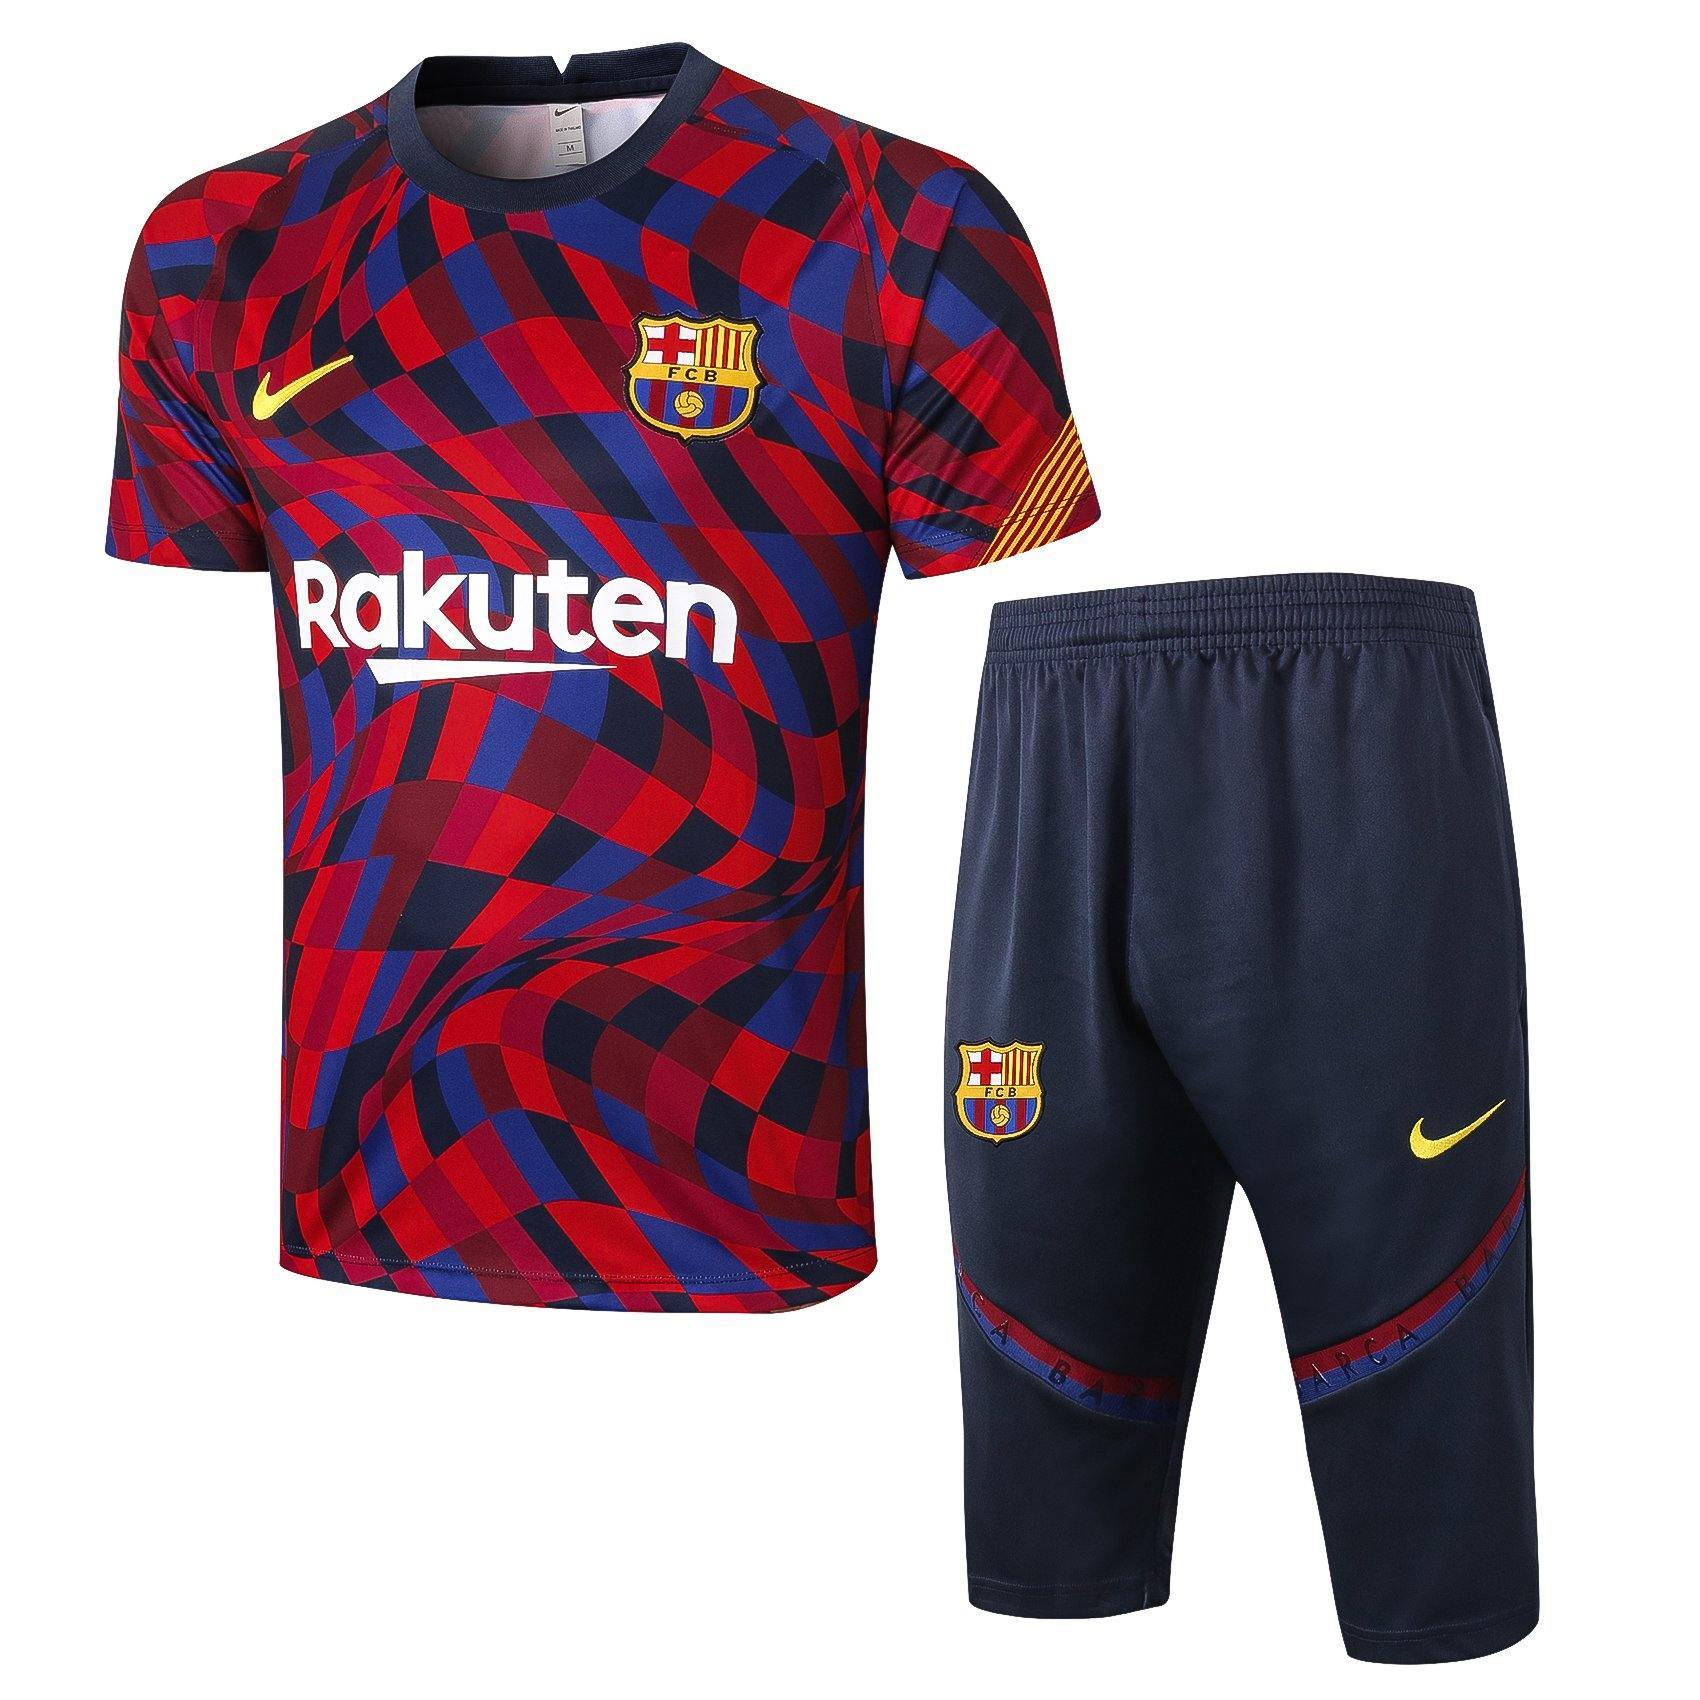 Maillot Pantalon 3/4 Barcelone Entrainement Rouge/Bleu 2021 Homme freeshipping - Foot Online